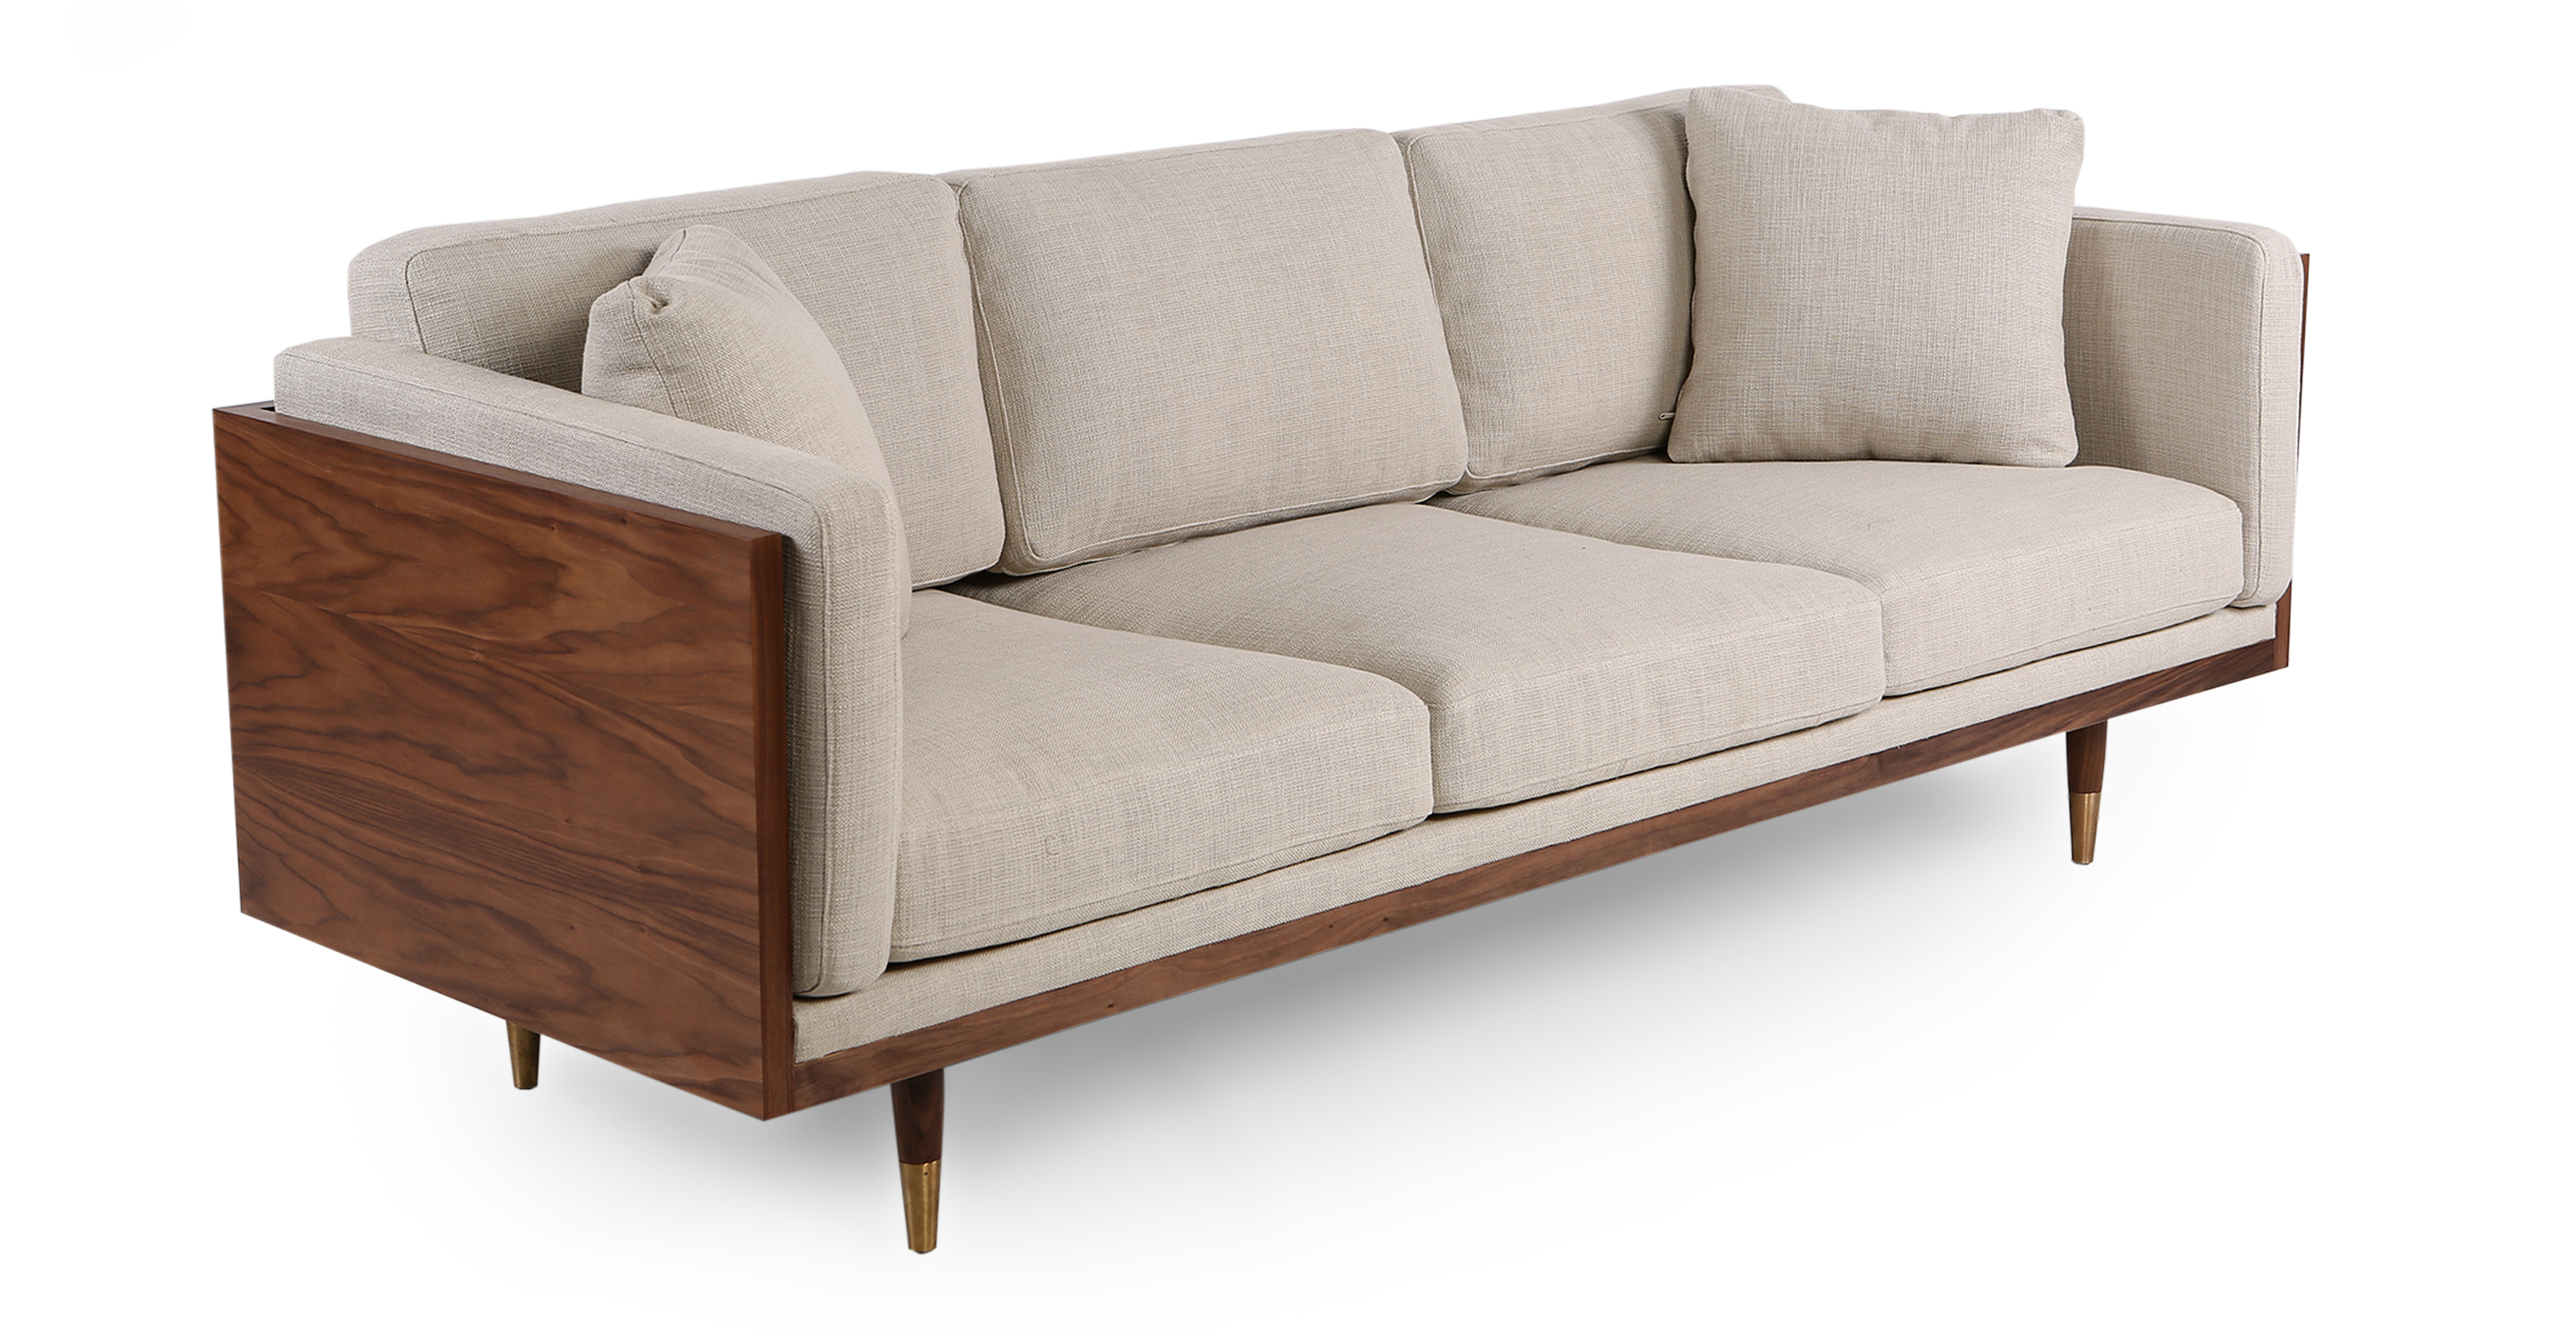 "Woodrow Lush 87"" Fabric Sofa, Walnut/Urban Hemp"